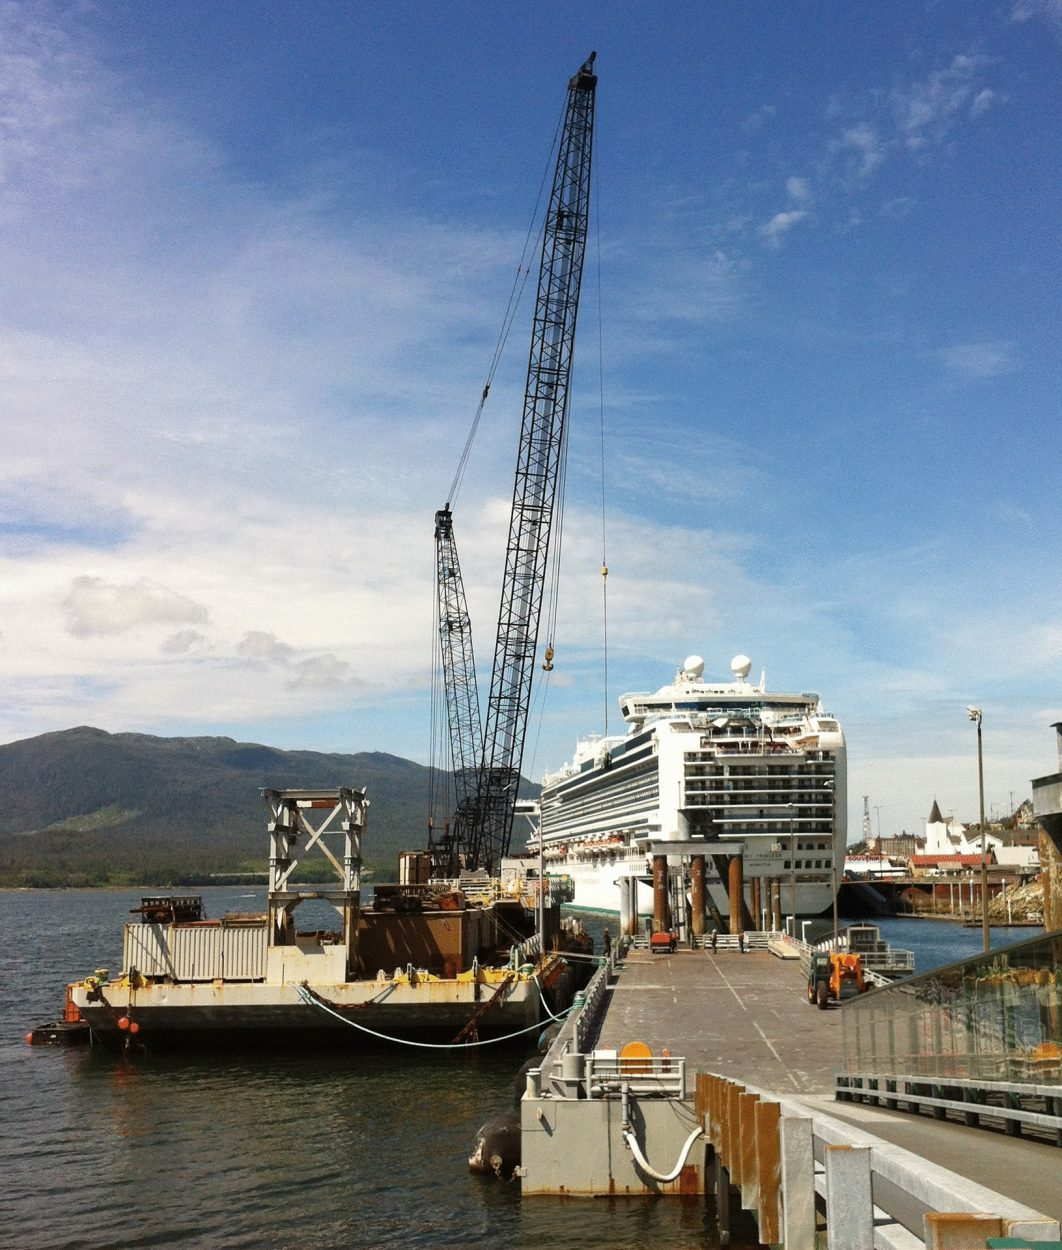 Ketchikan Berth 3 initial repairs completed